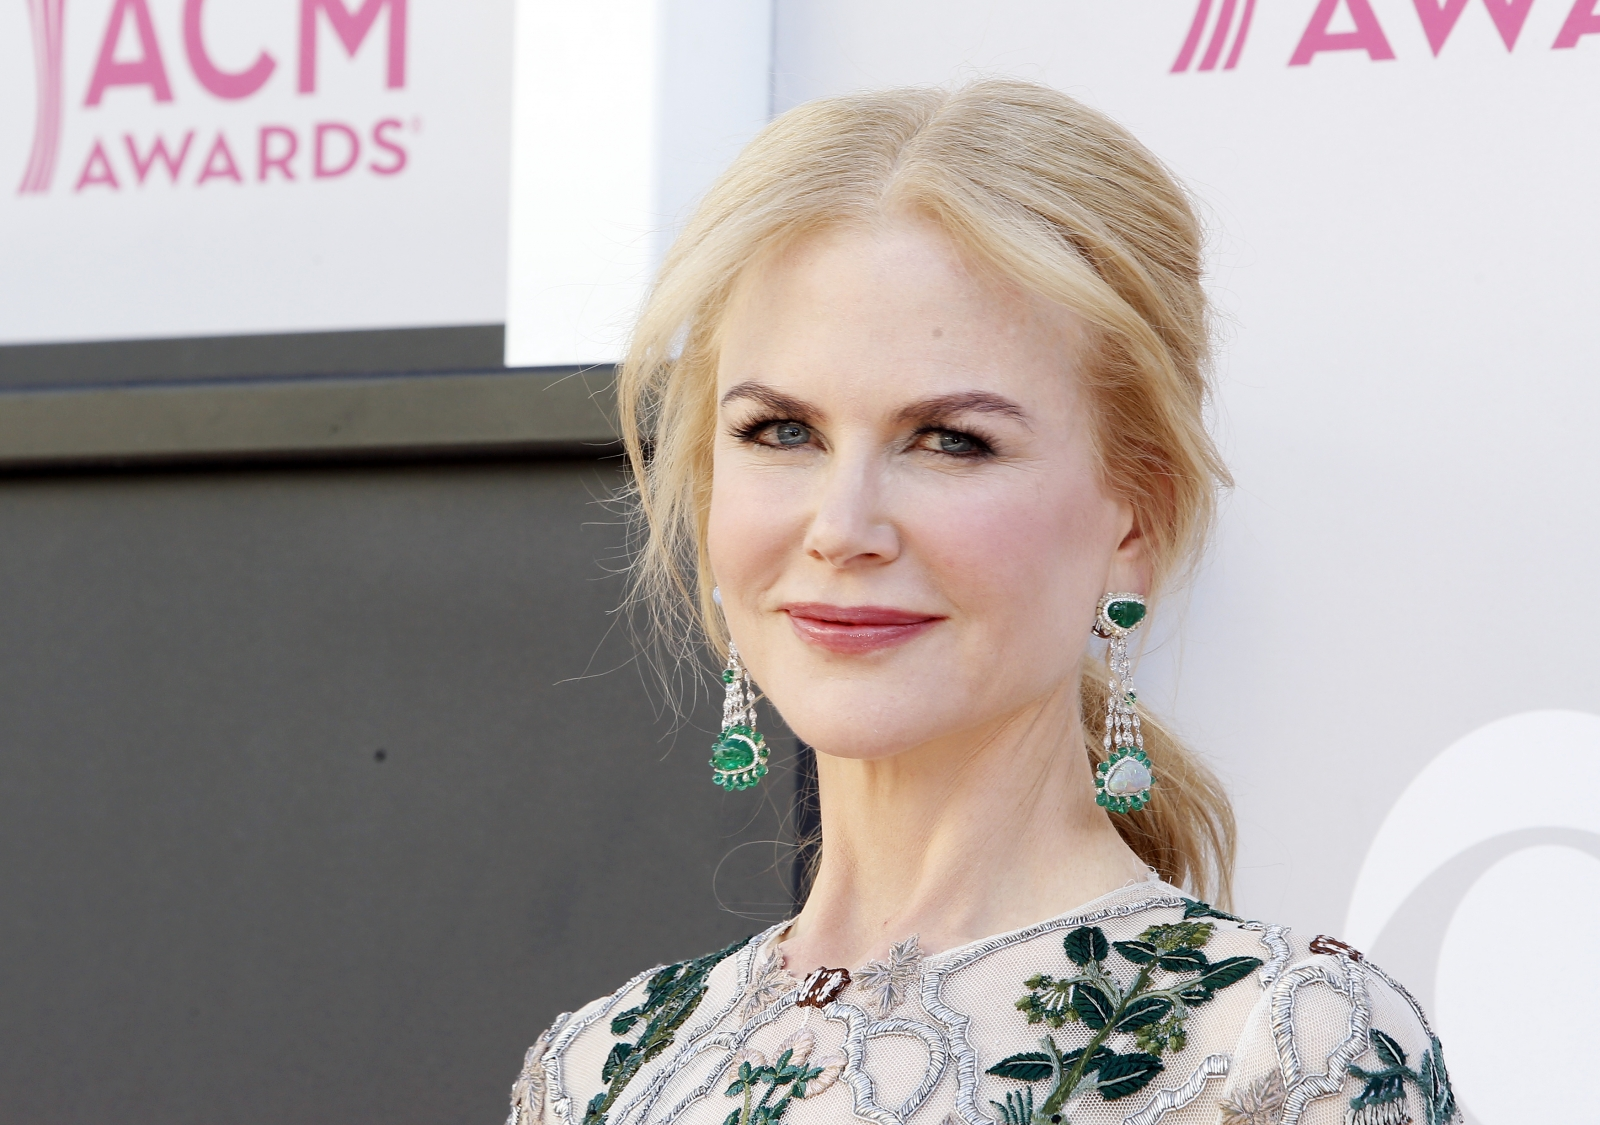 Nicole Kidman stuns fans by flaunting nipples in a sexy red swimsuit: 'She gets better with age'